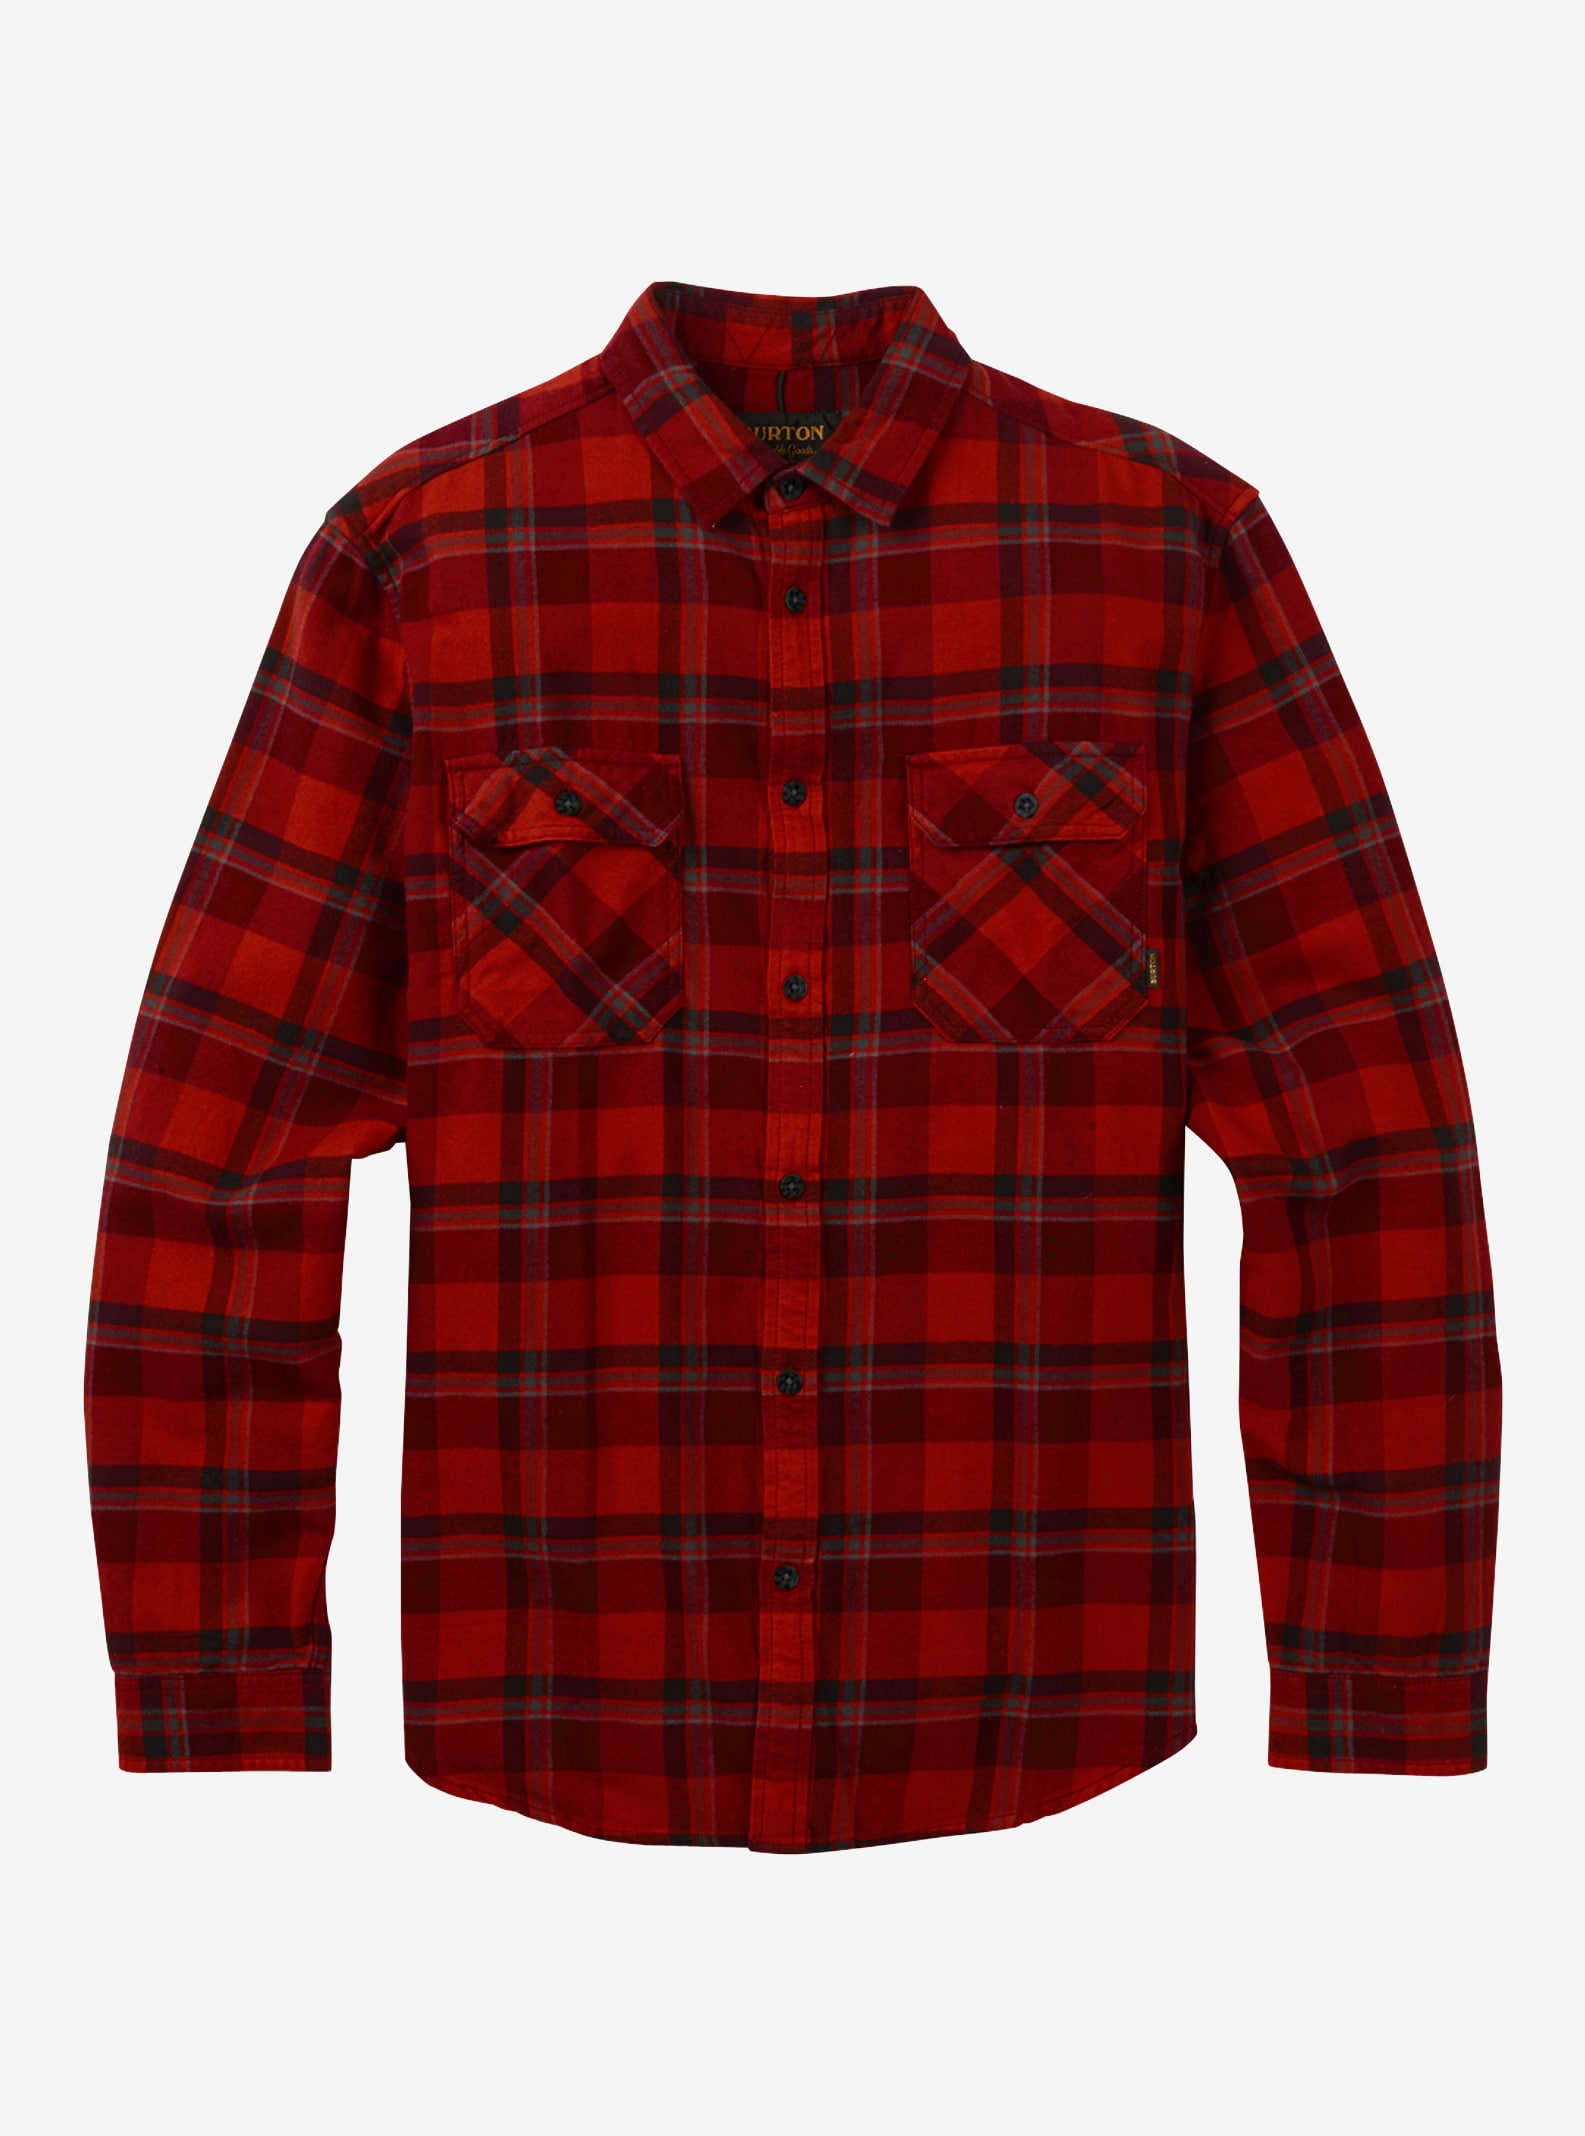 Men's Burton Brighton Flannel shown in Bitters Hawthorn Plaid